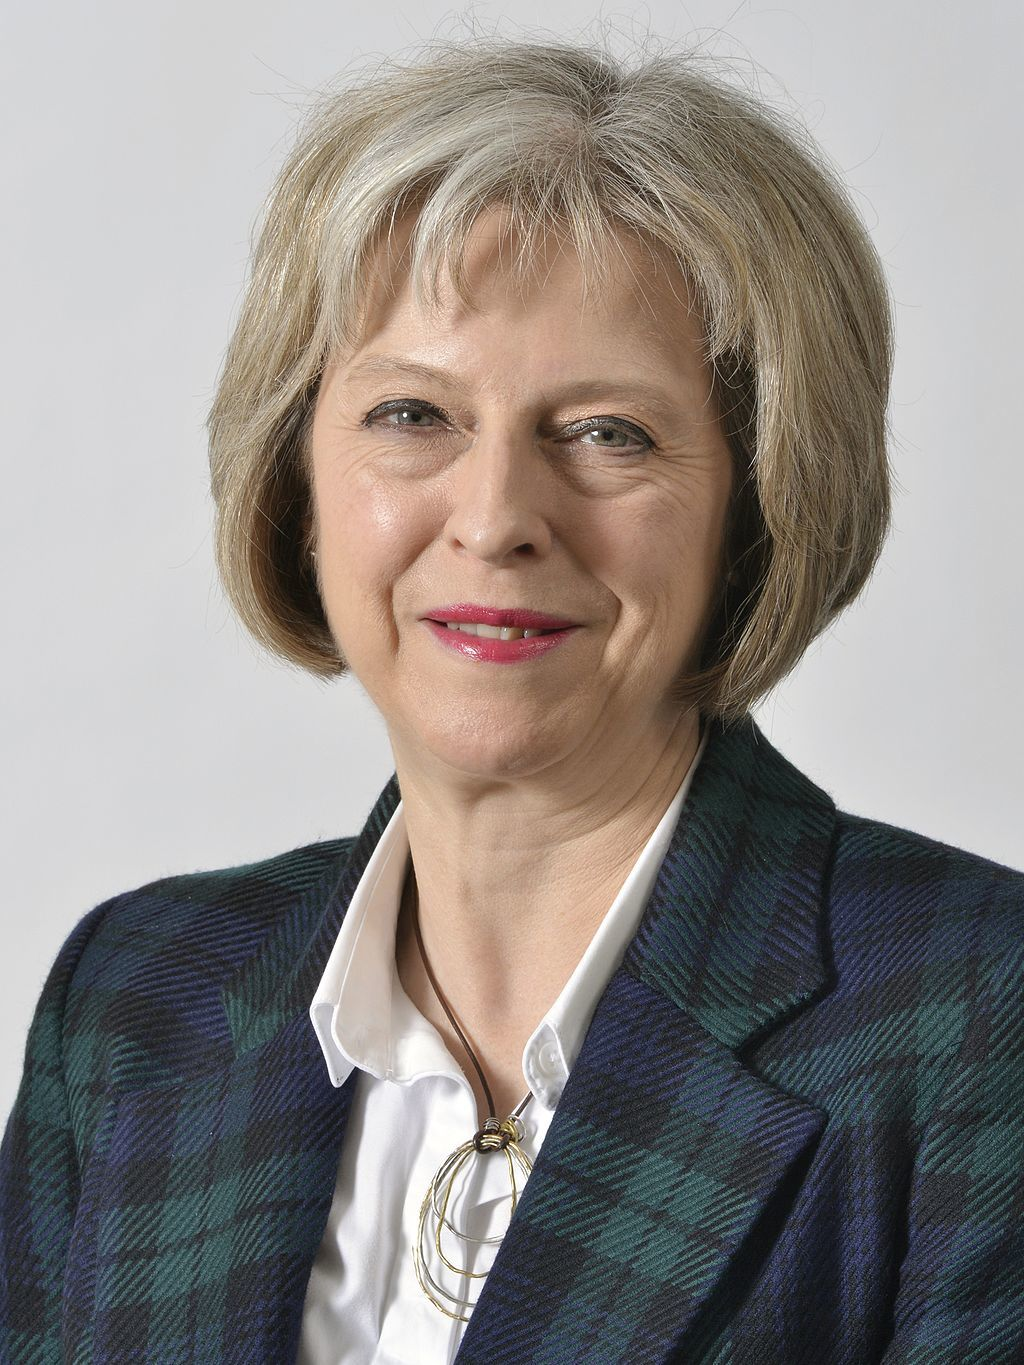 Theresa_May_UK_Home_Office_(cropped).jpg